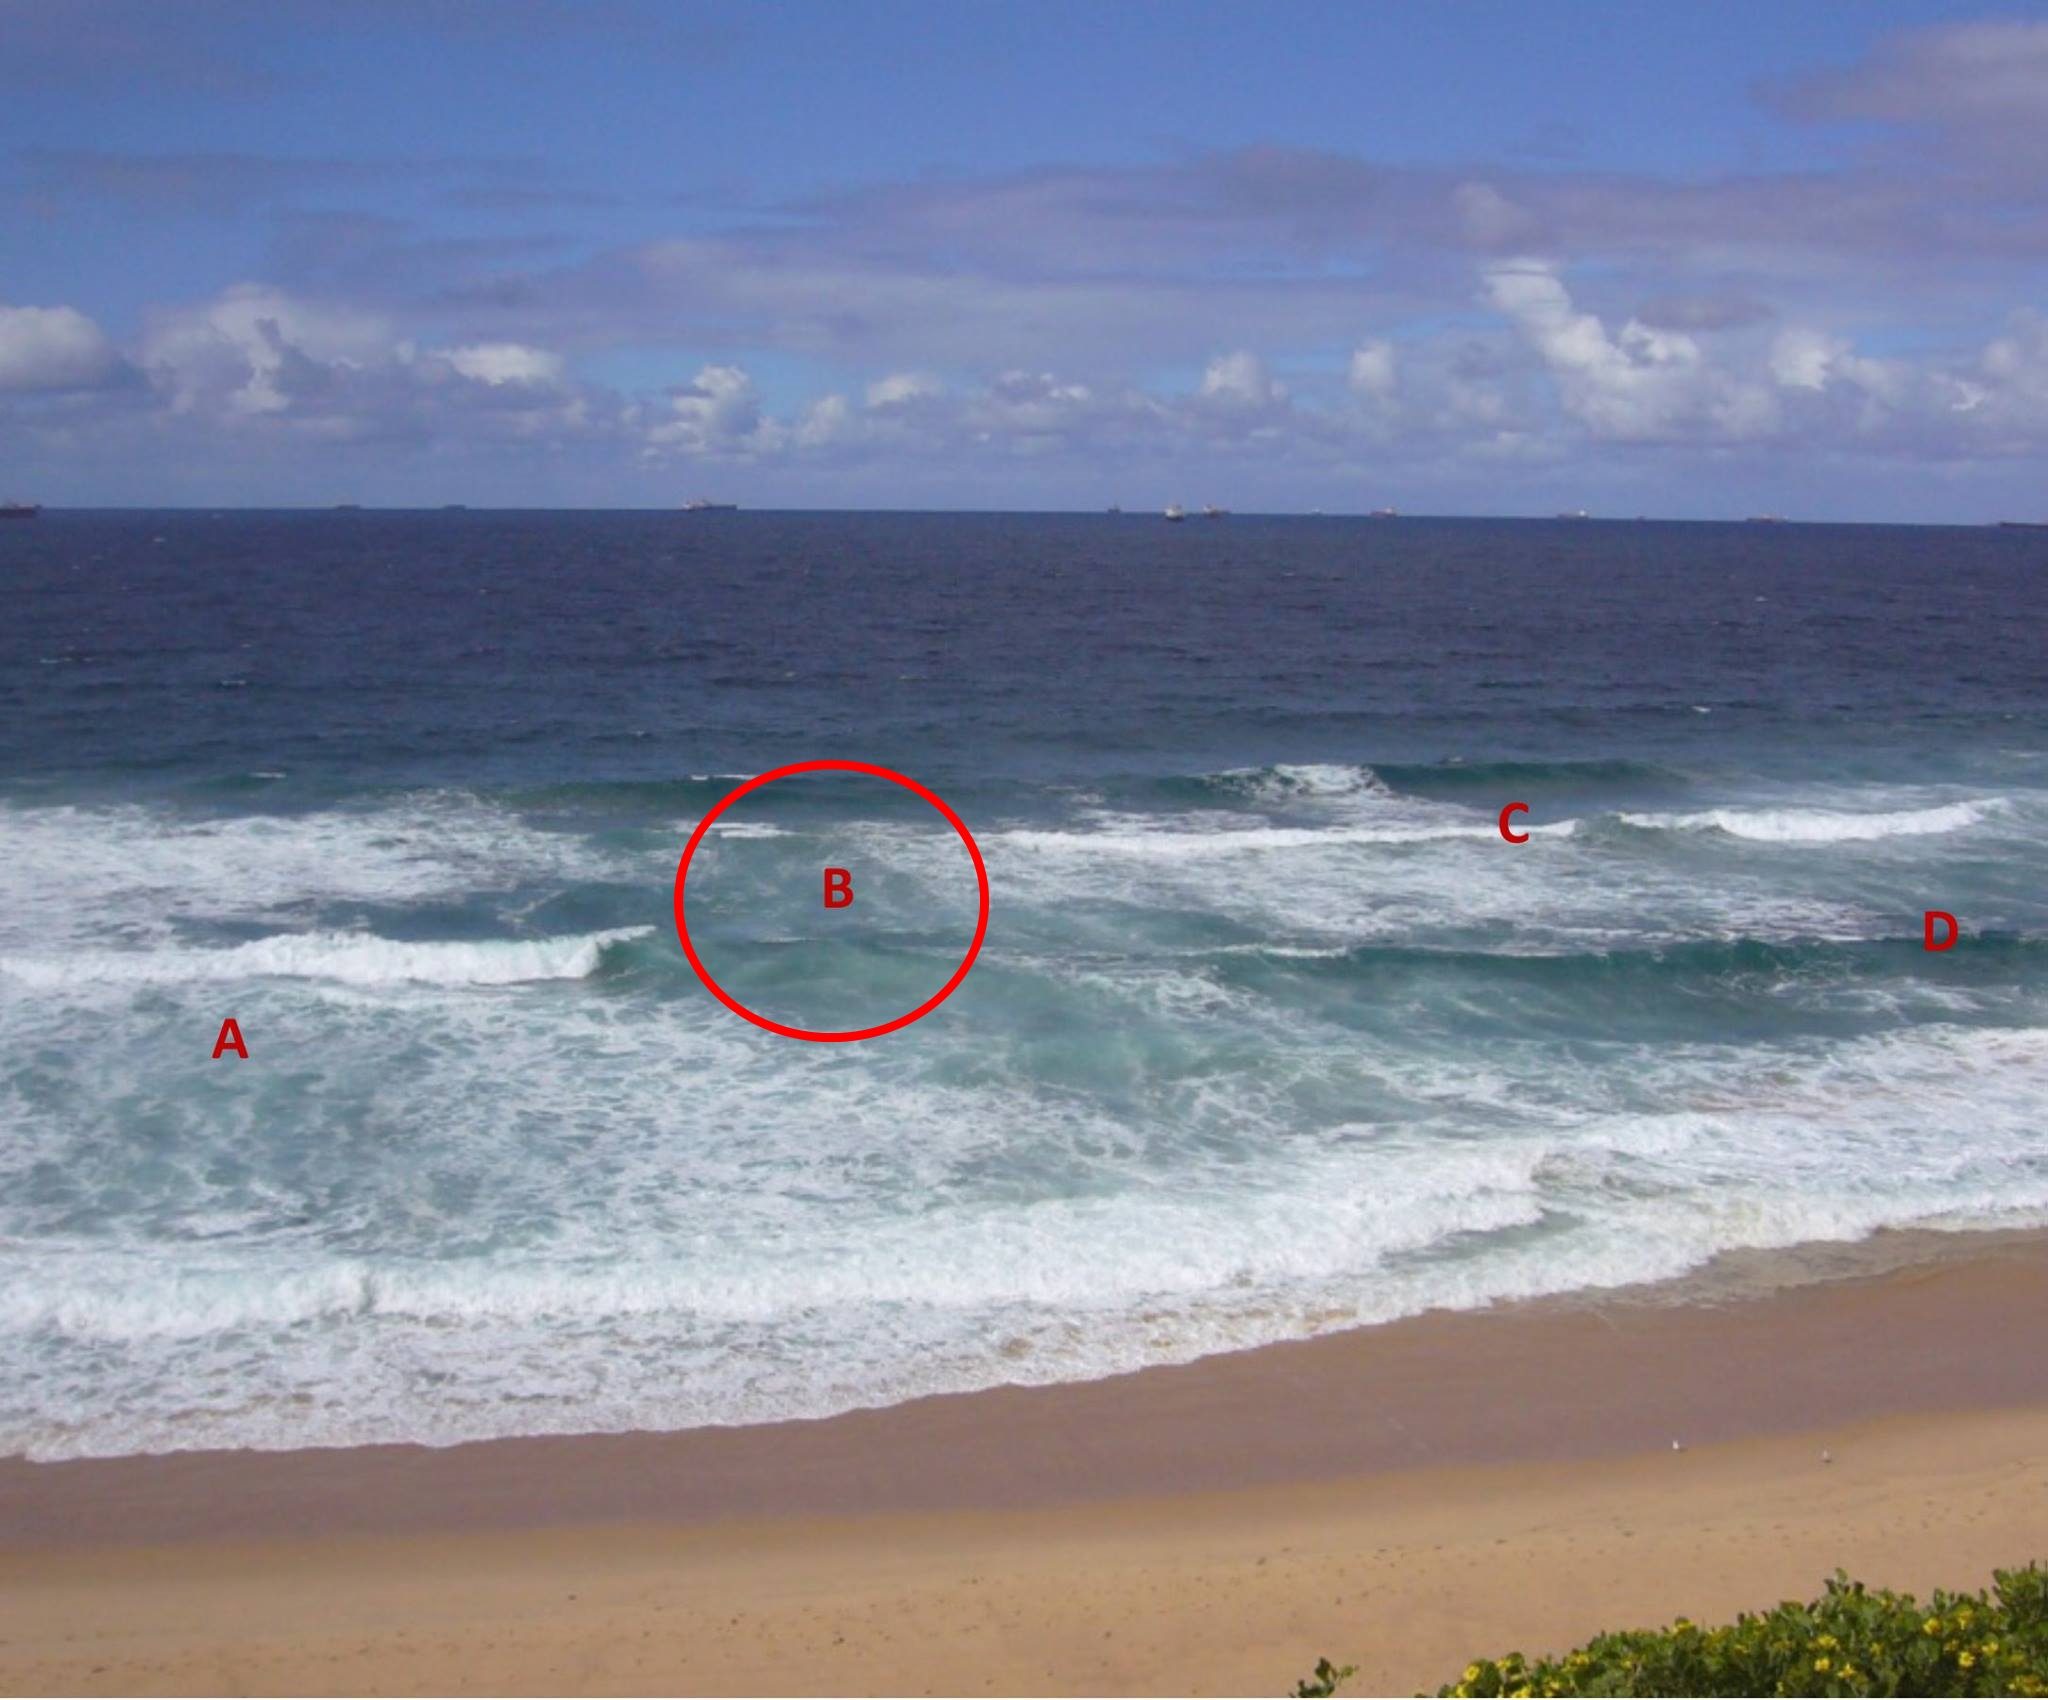 The Rip Current is at location B.